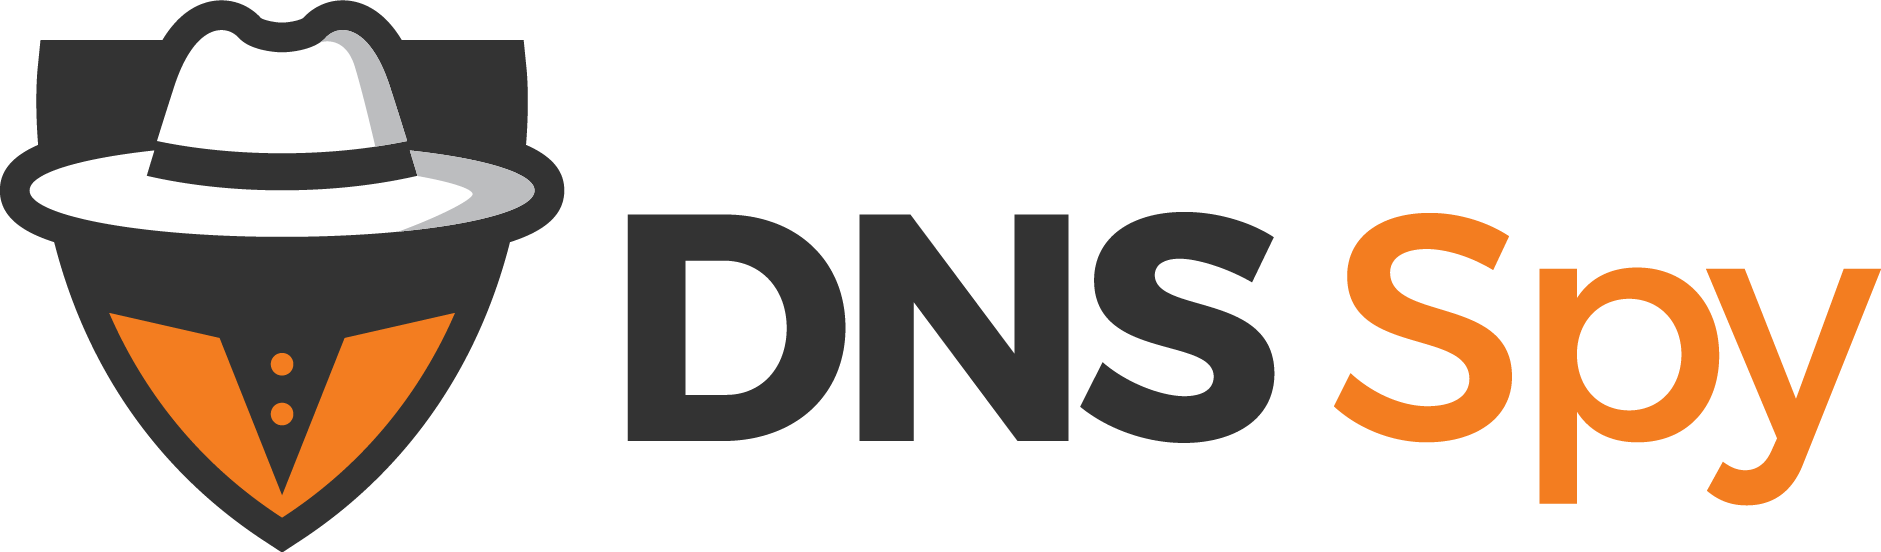 DNS Spy: Paranoid about your DNS. Monitor & back-up your DNS, get alerts when your DNS changes.